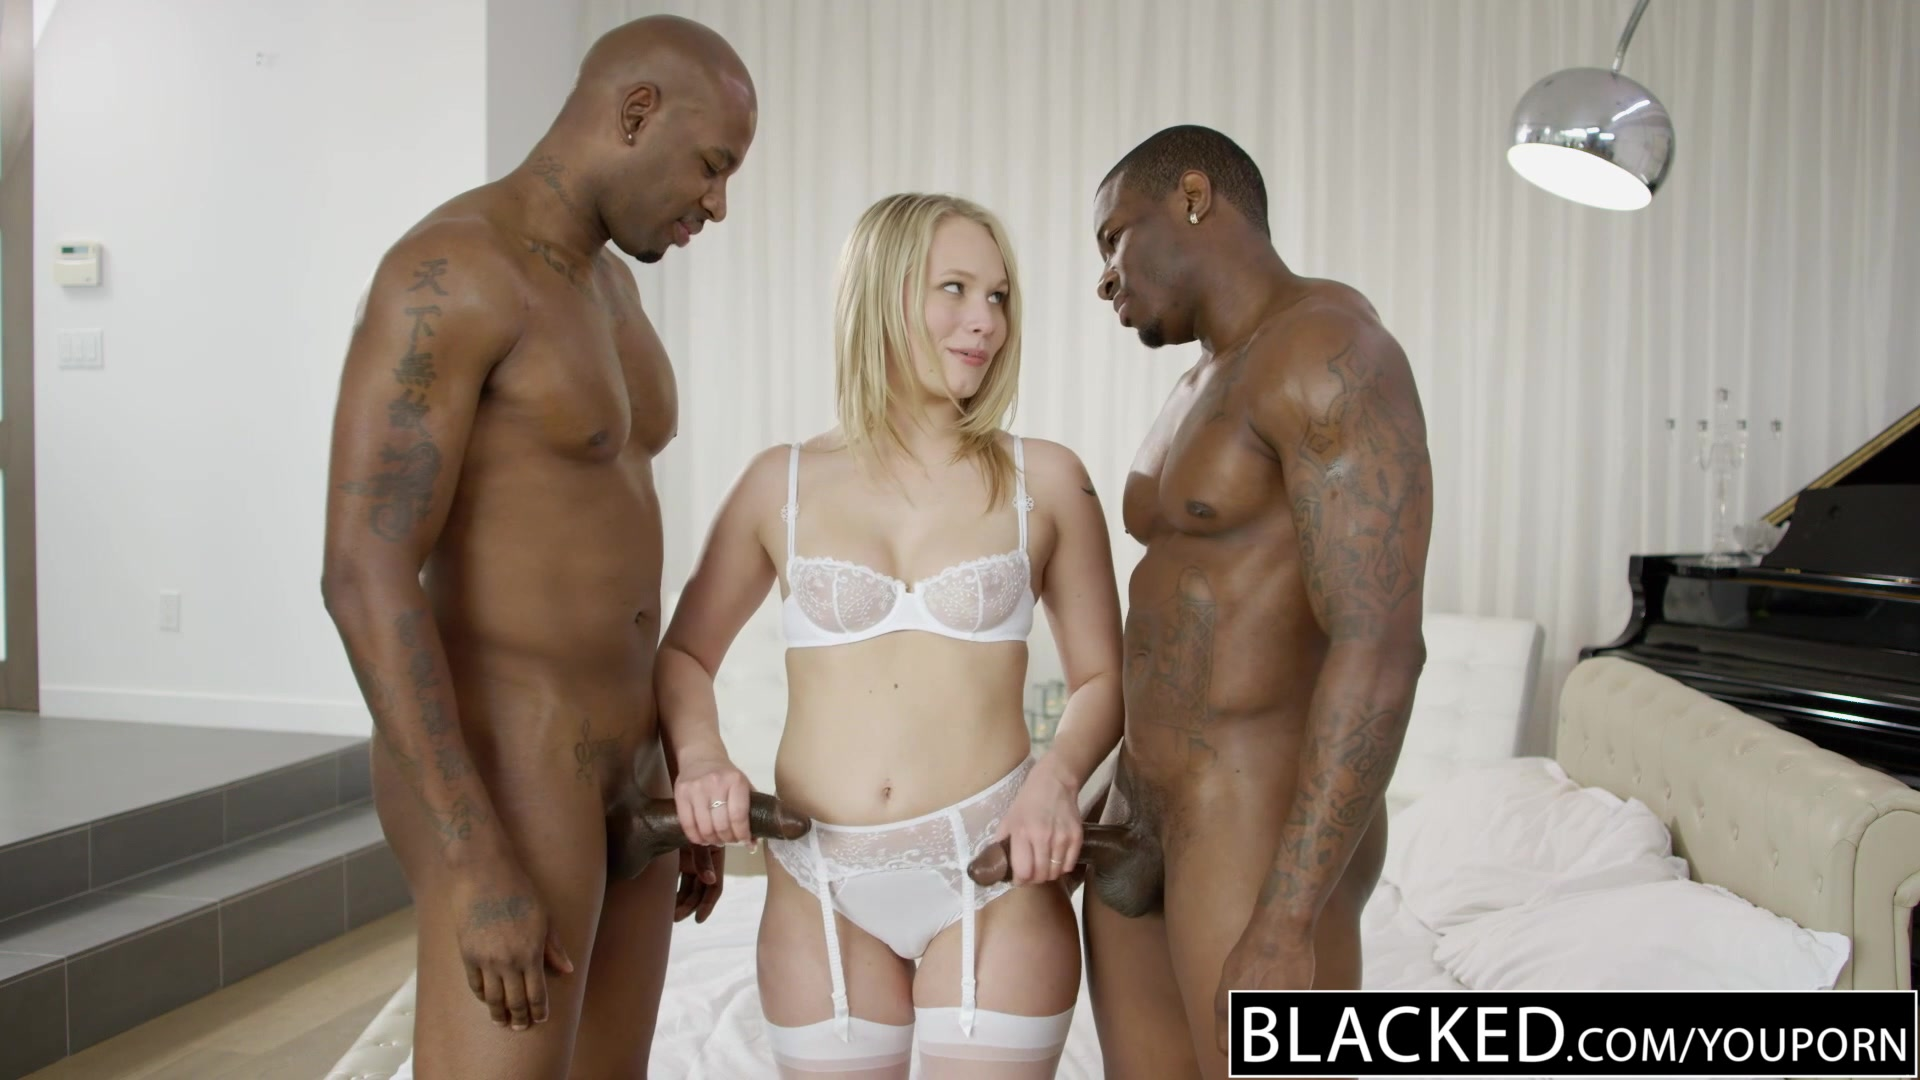 Beautiful Blonde Dakota James Screams With 2 Big Black Cocks